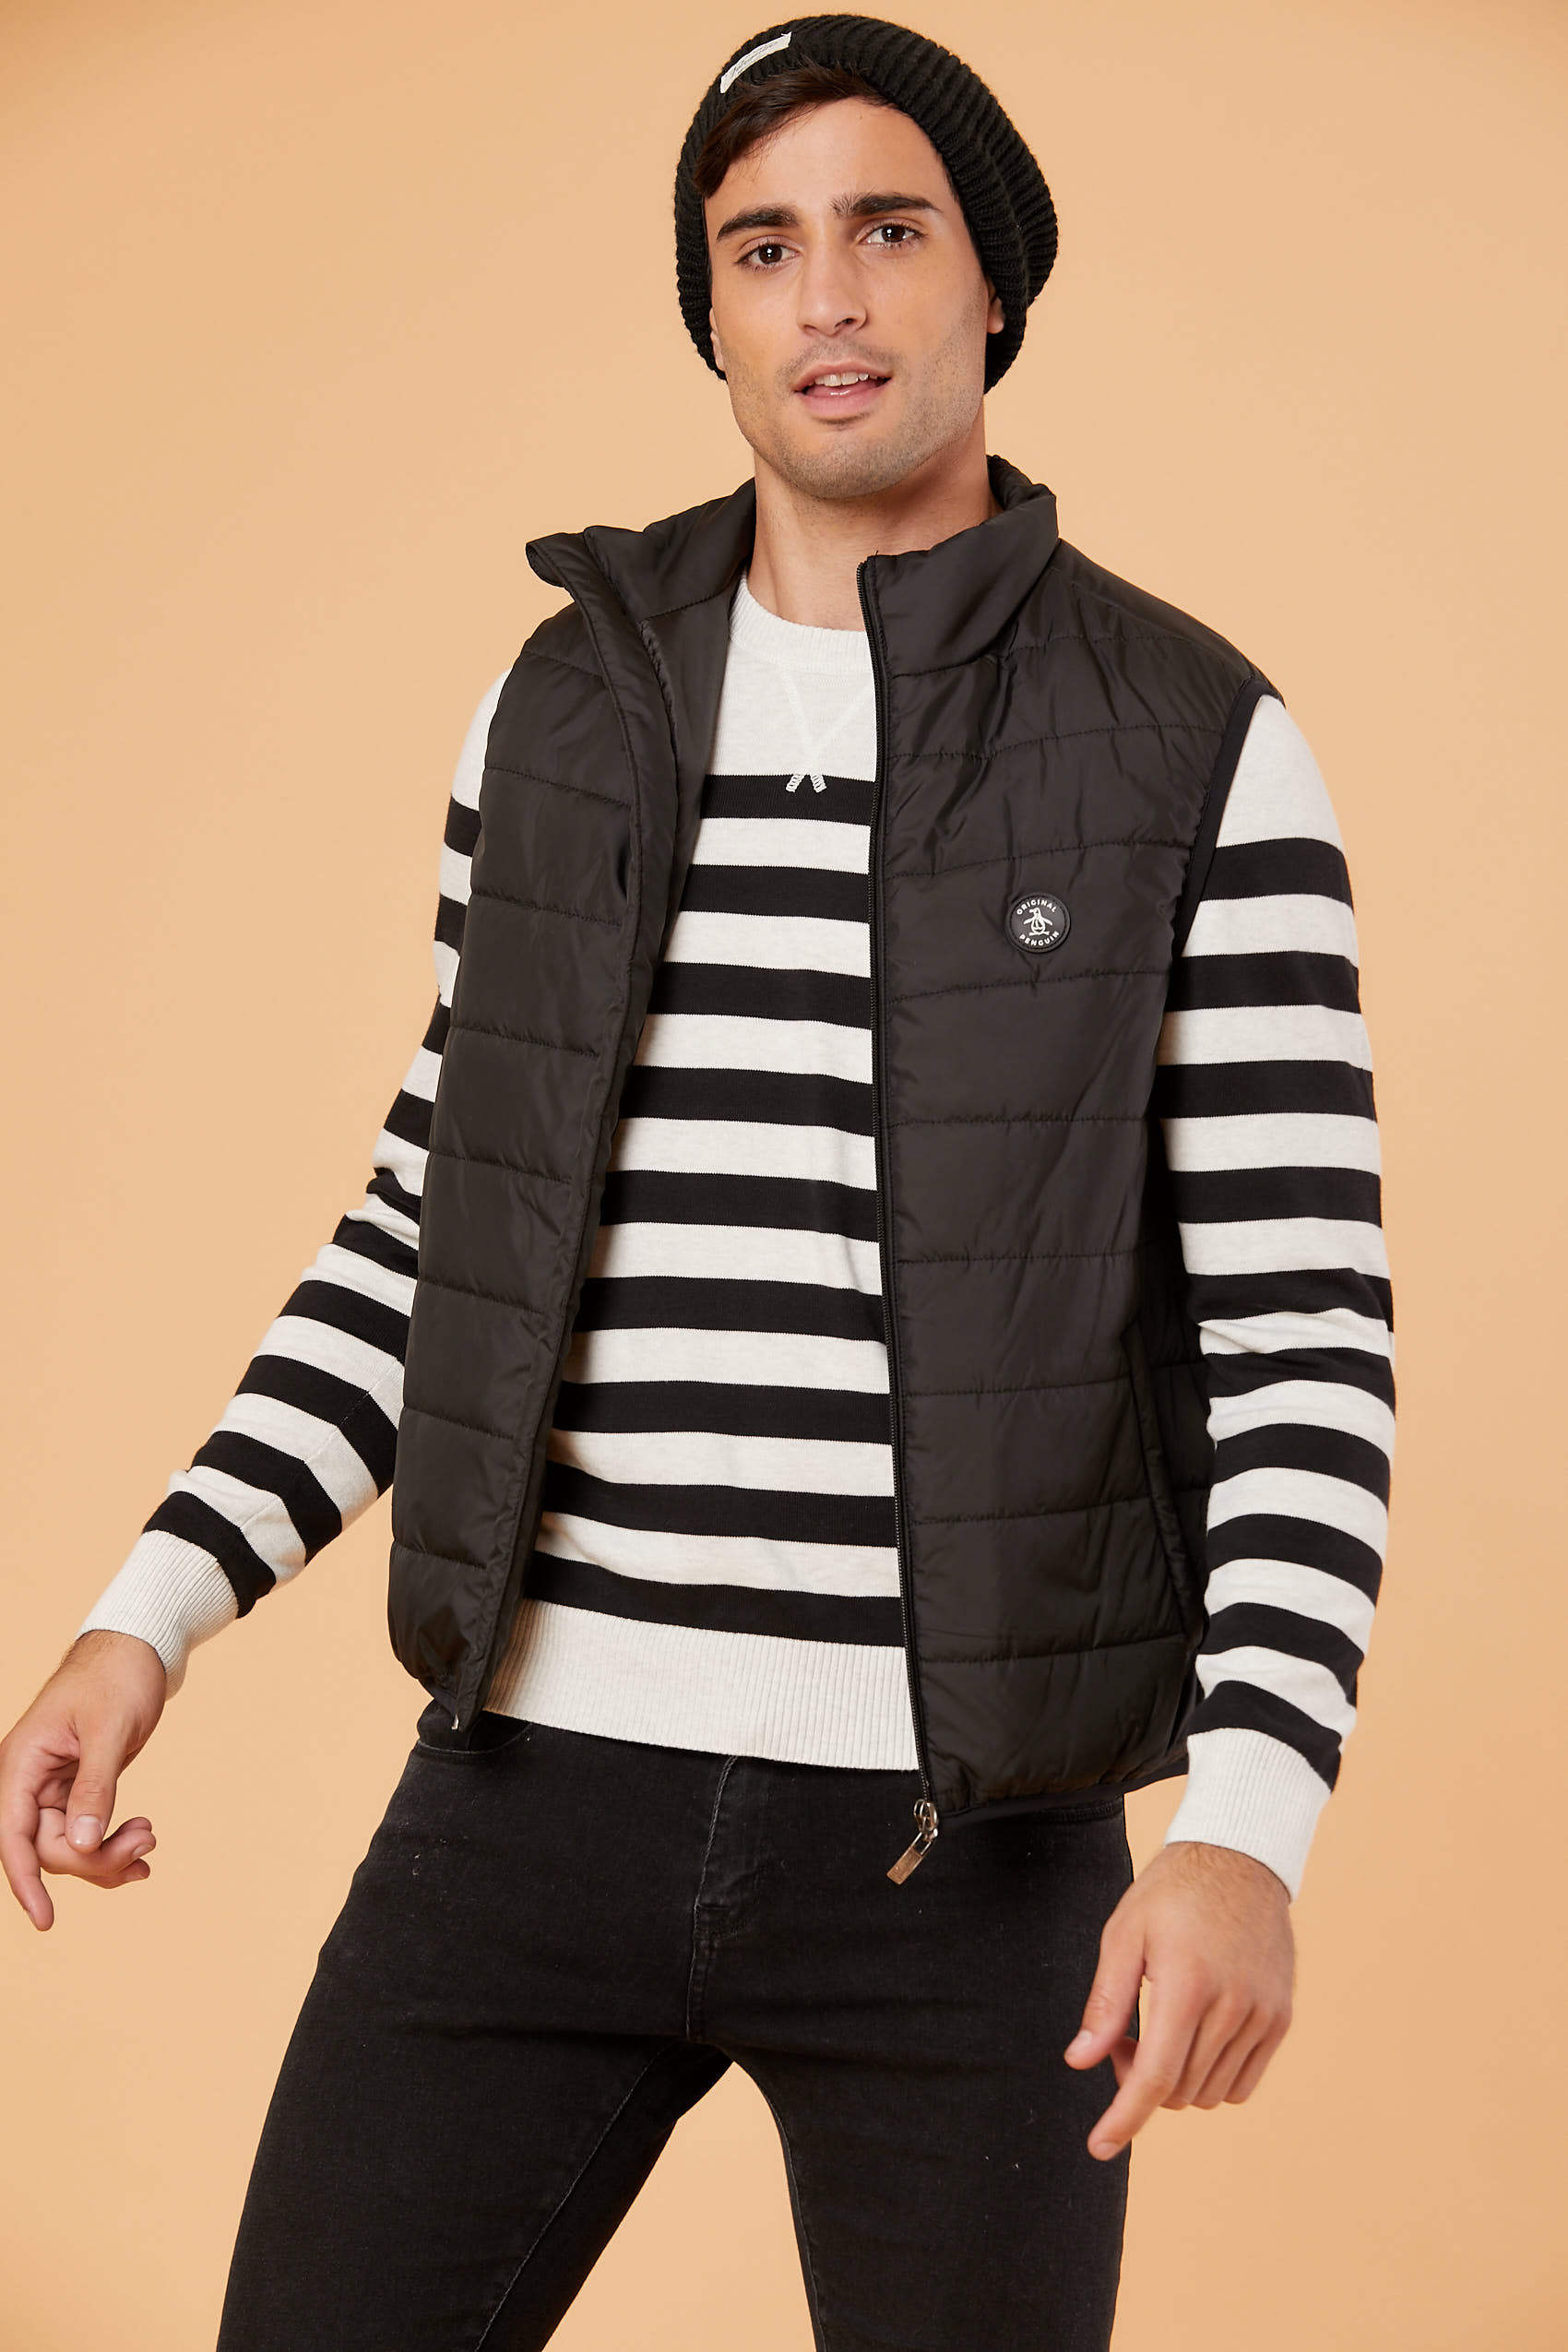 penguin_quilted-solid-vest_50-08-2021__picture-19901